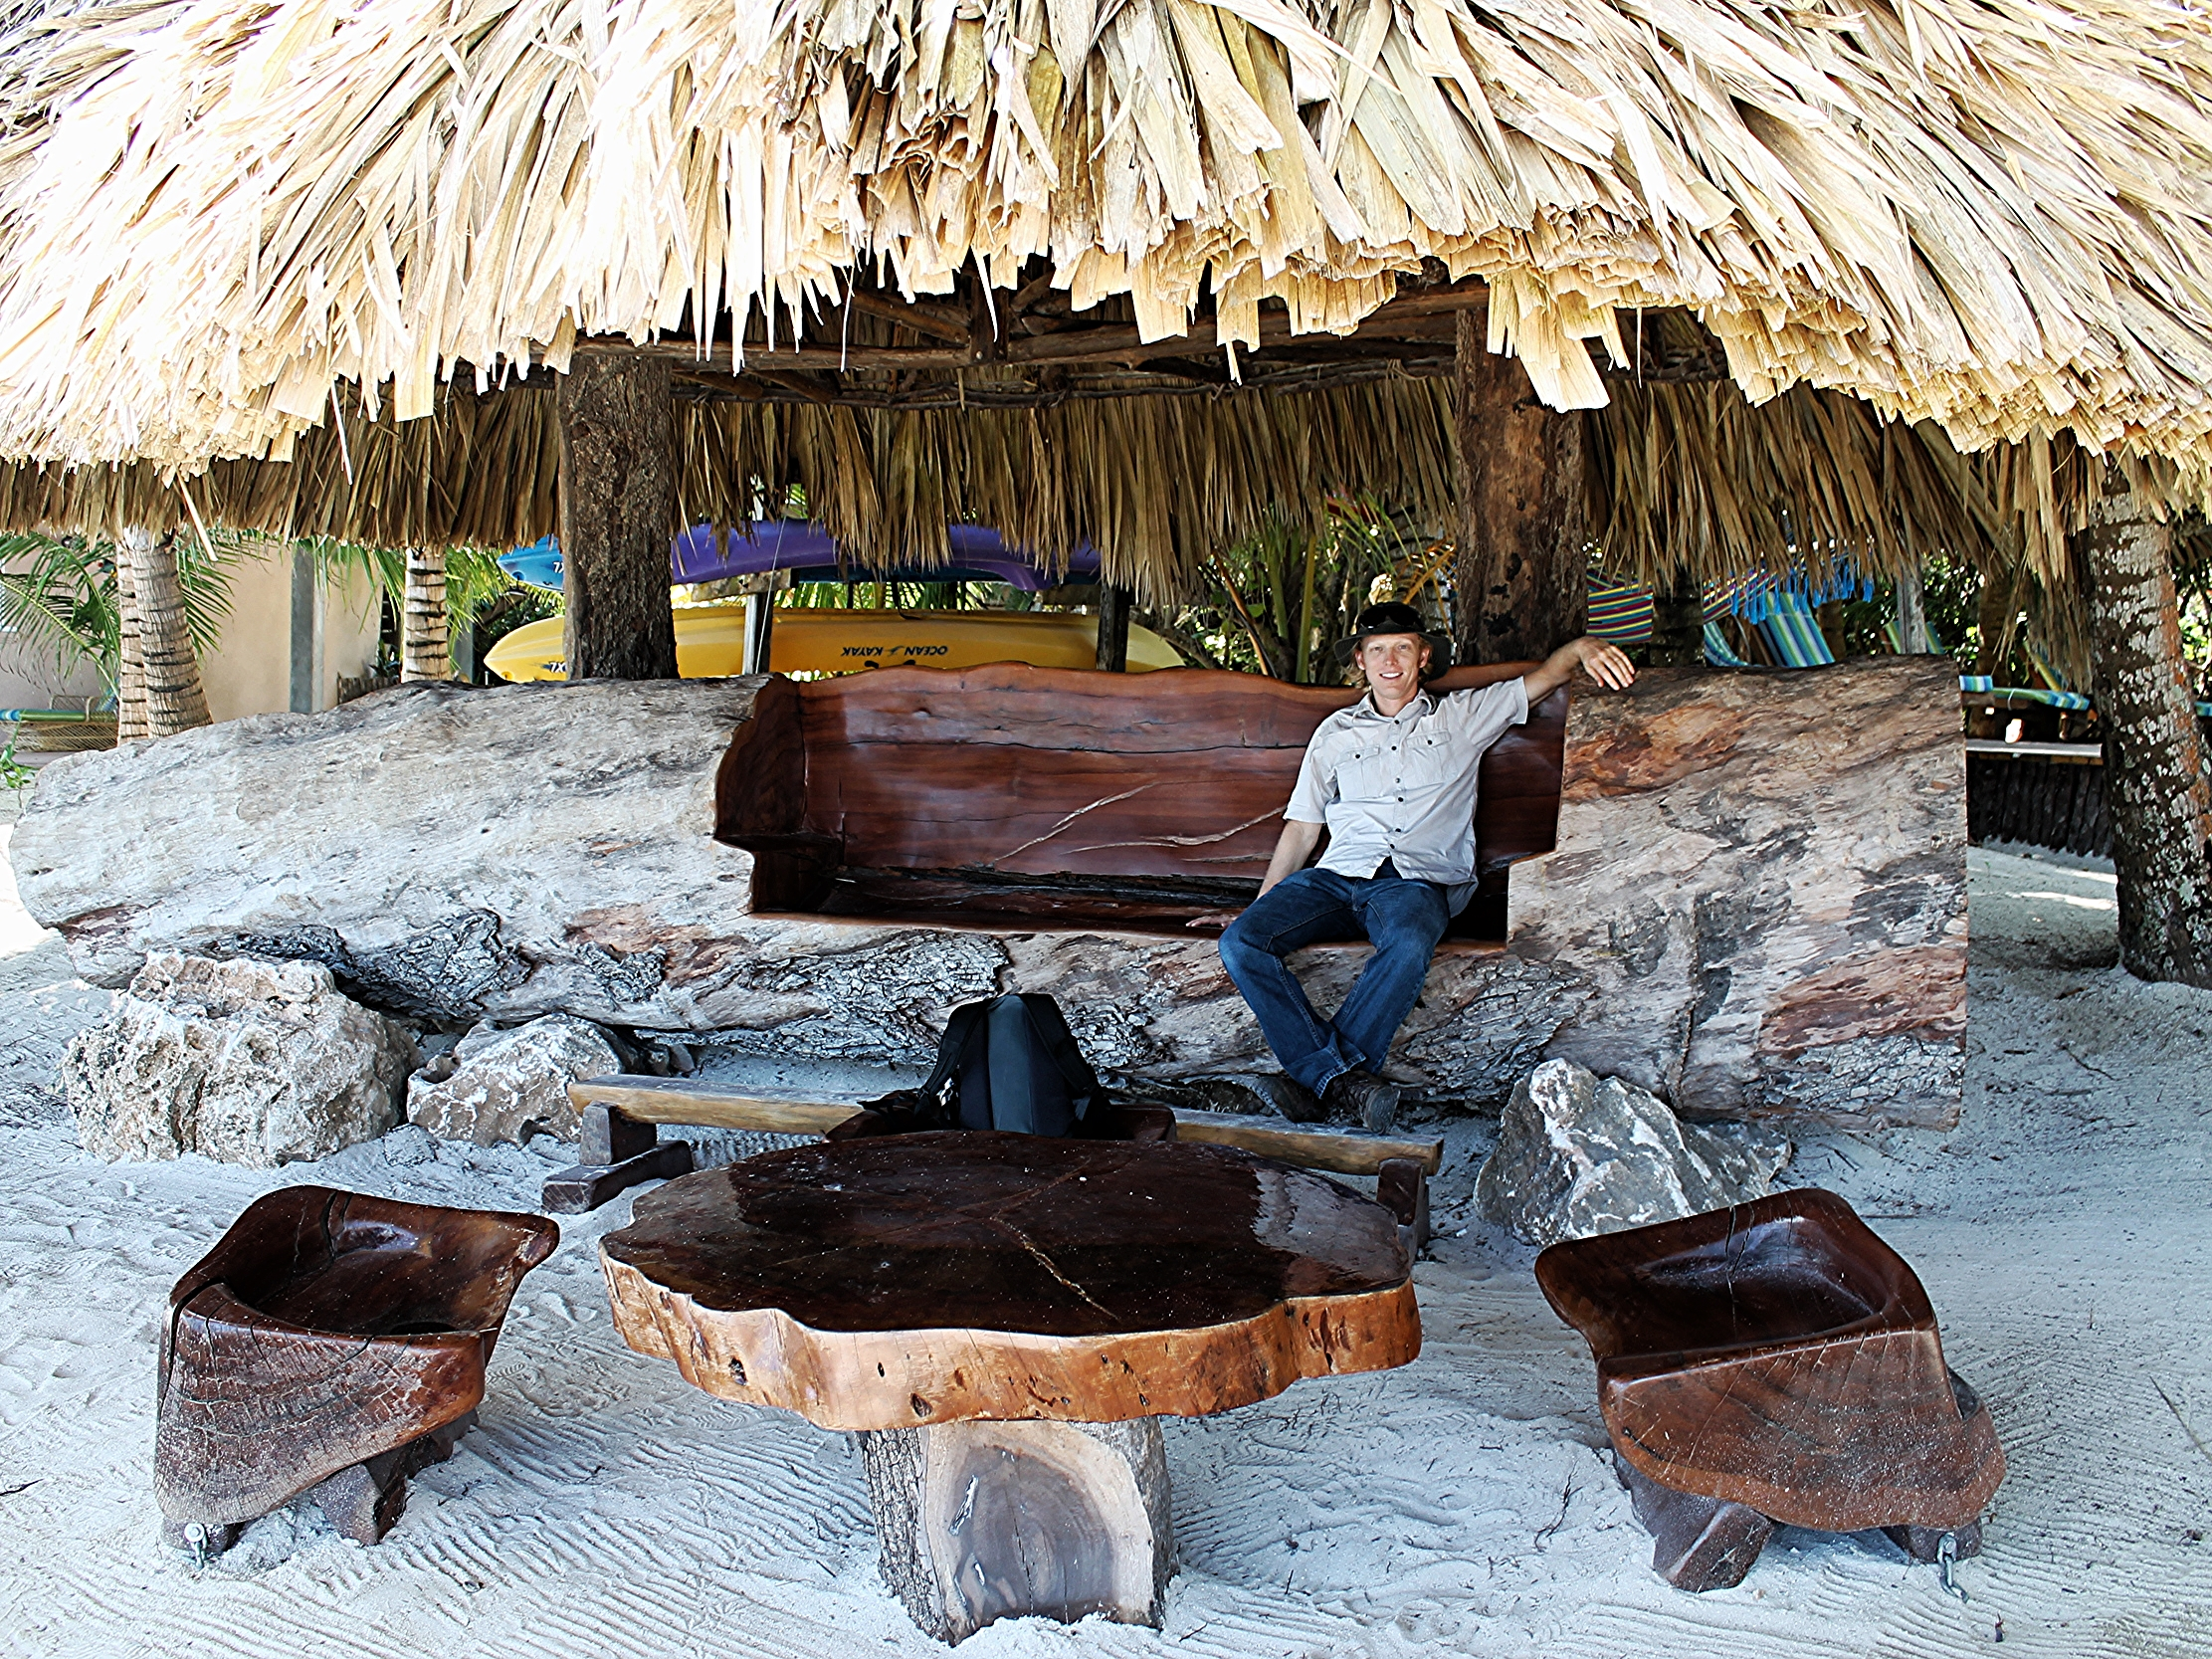 David Berg - Belize Travel Expert - Belize Travel Agent - All Inclusive Vacation Packages - SabreWing Travel